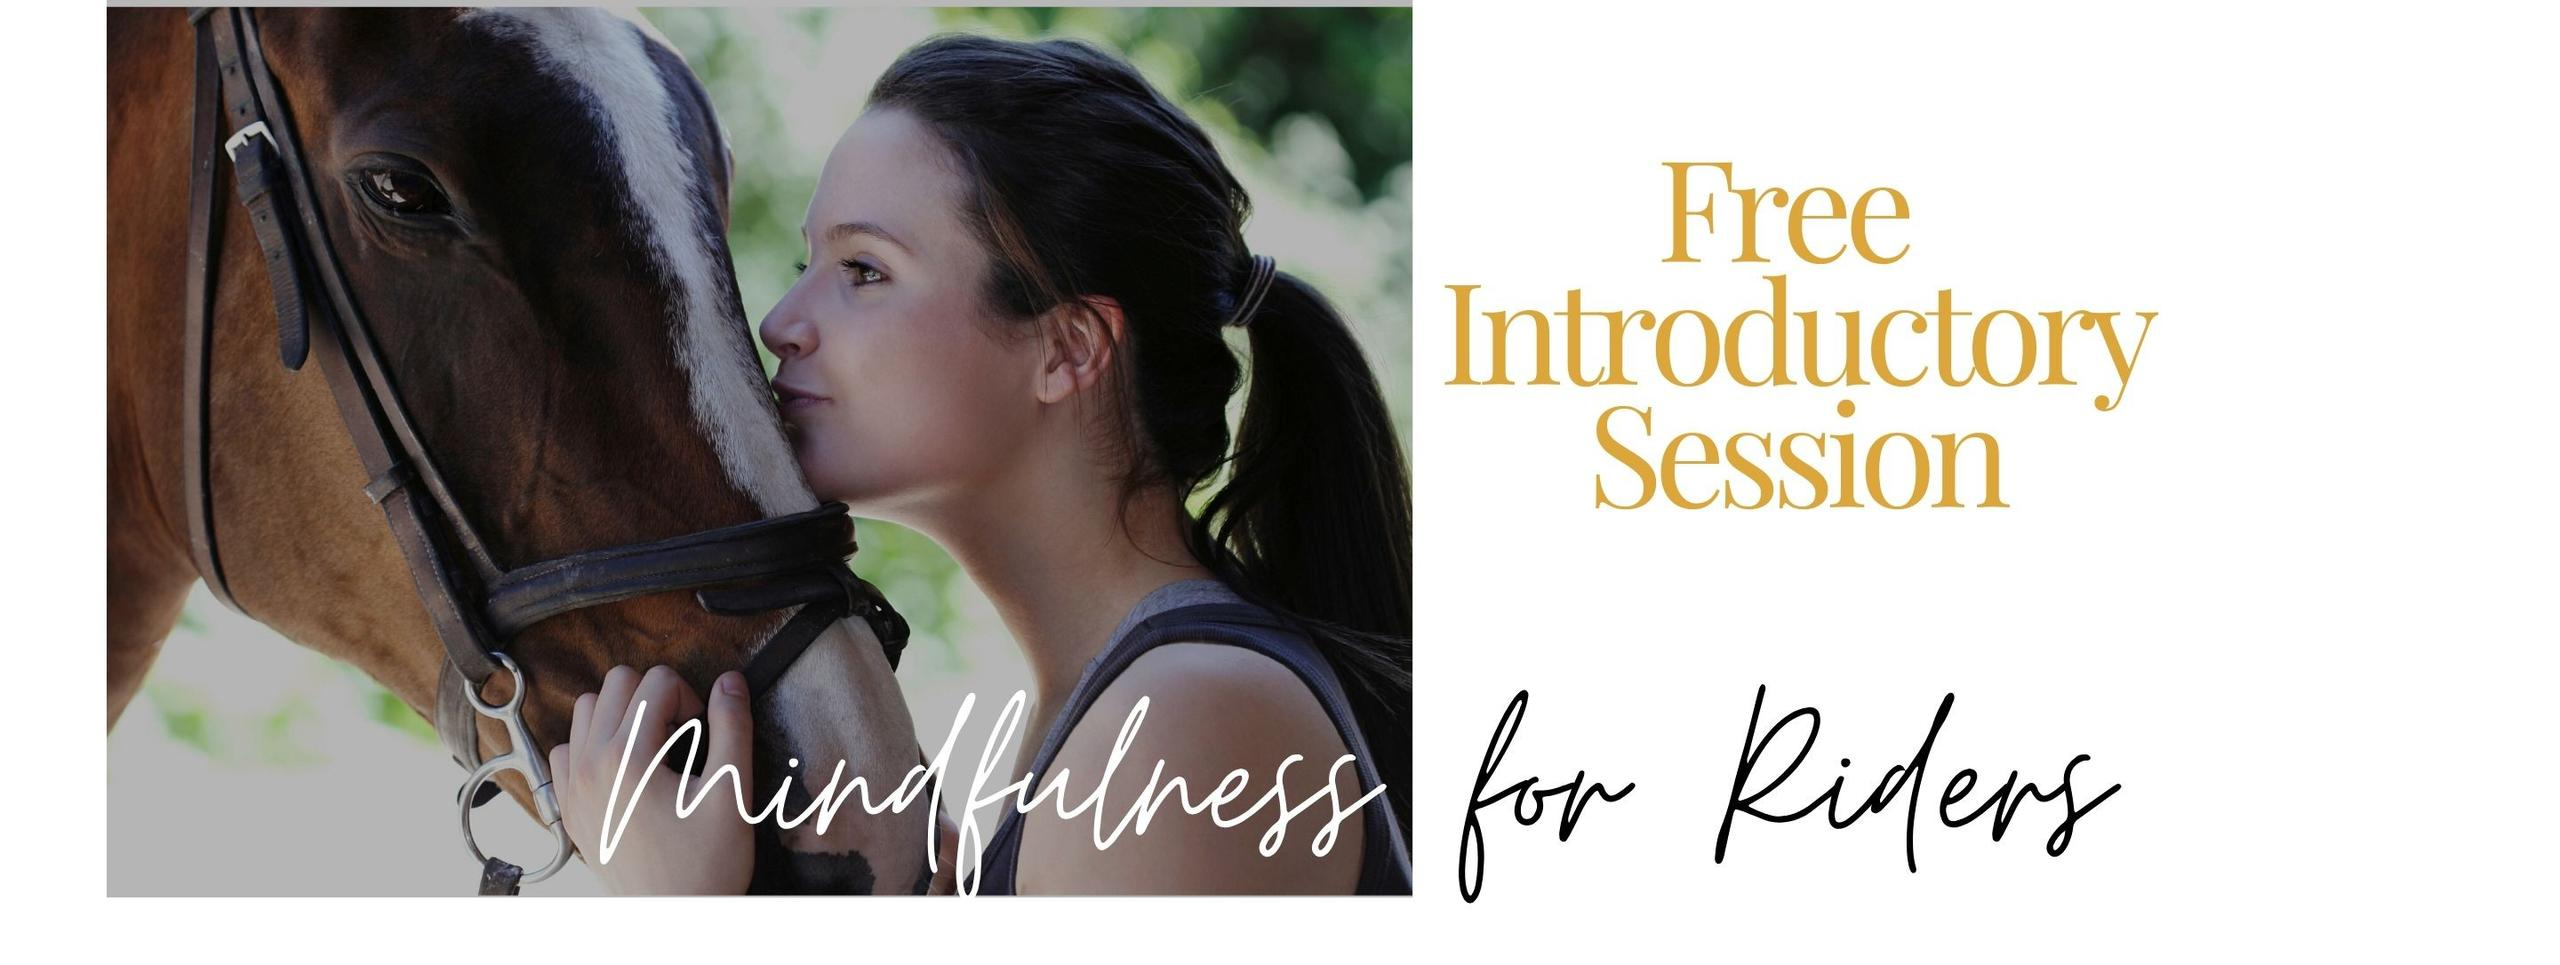 Free introduction to mindfulness for riders is for all equestrians looking for calm, confidence and connection with their horses.